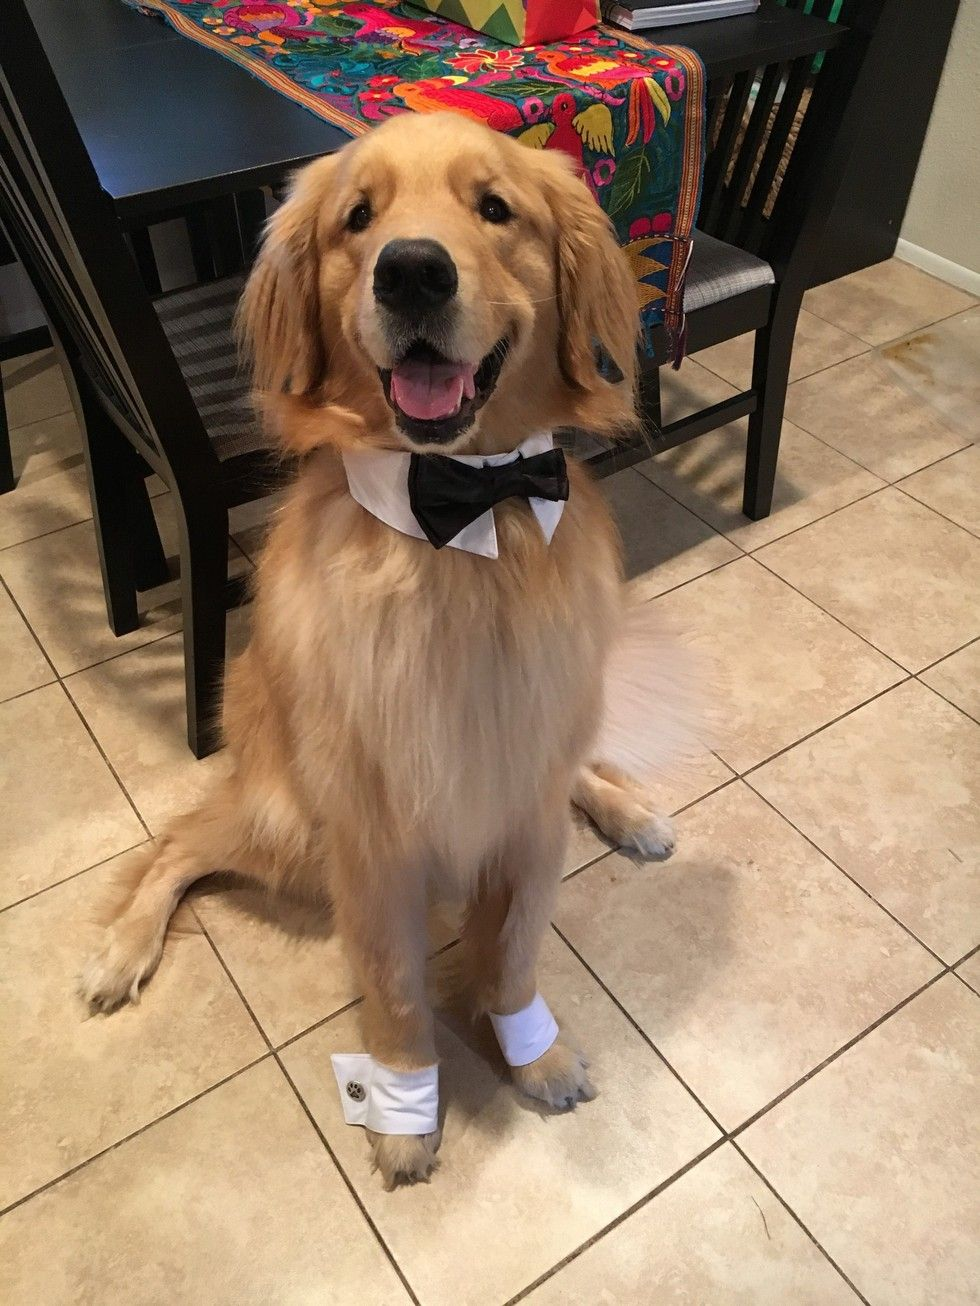 Dog Dresses Up To Help His Dad Propose To His Mom Dressed Up